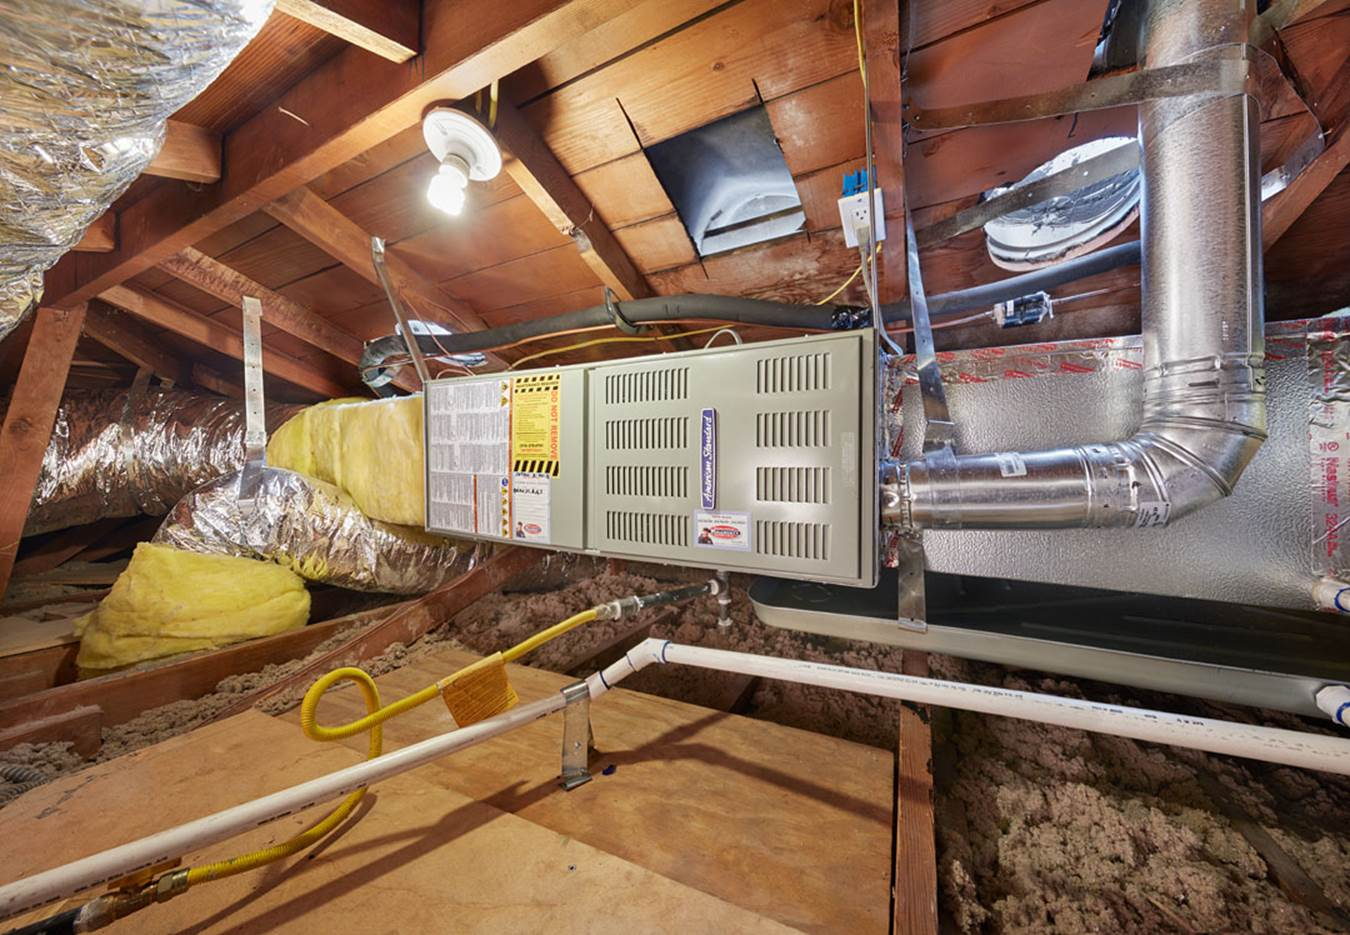 moving a furnace to the attic some things to consider electric wiring in house built in 1947 electrical wiring in house diagram